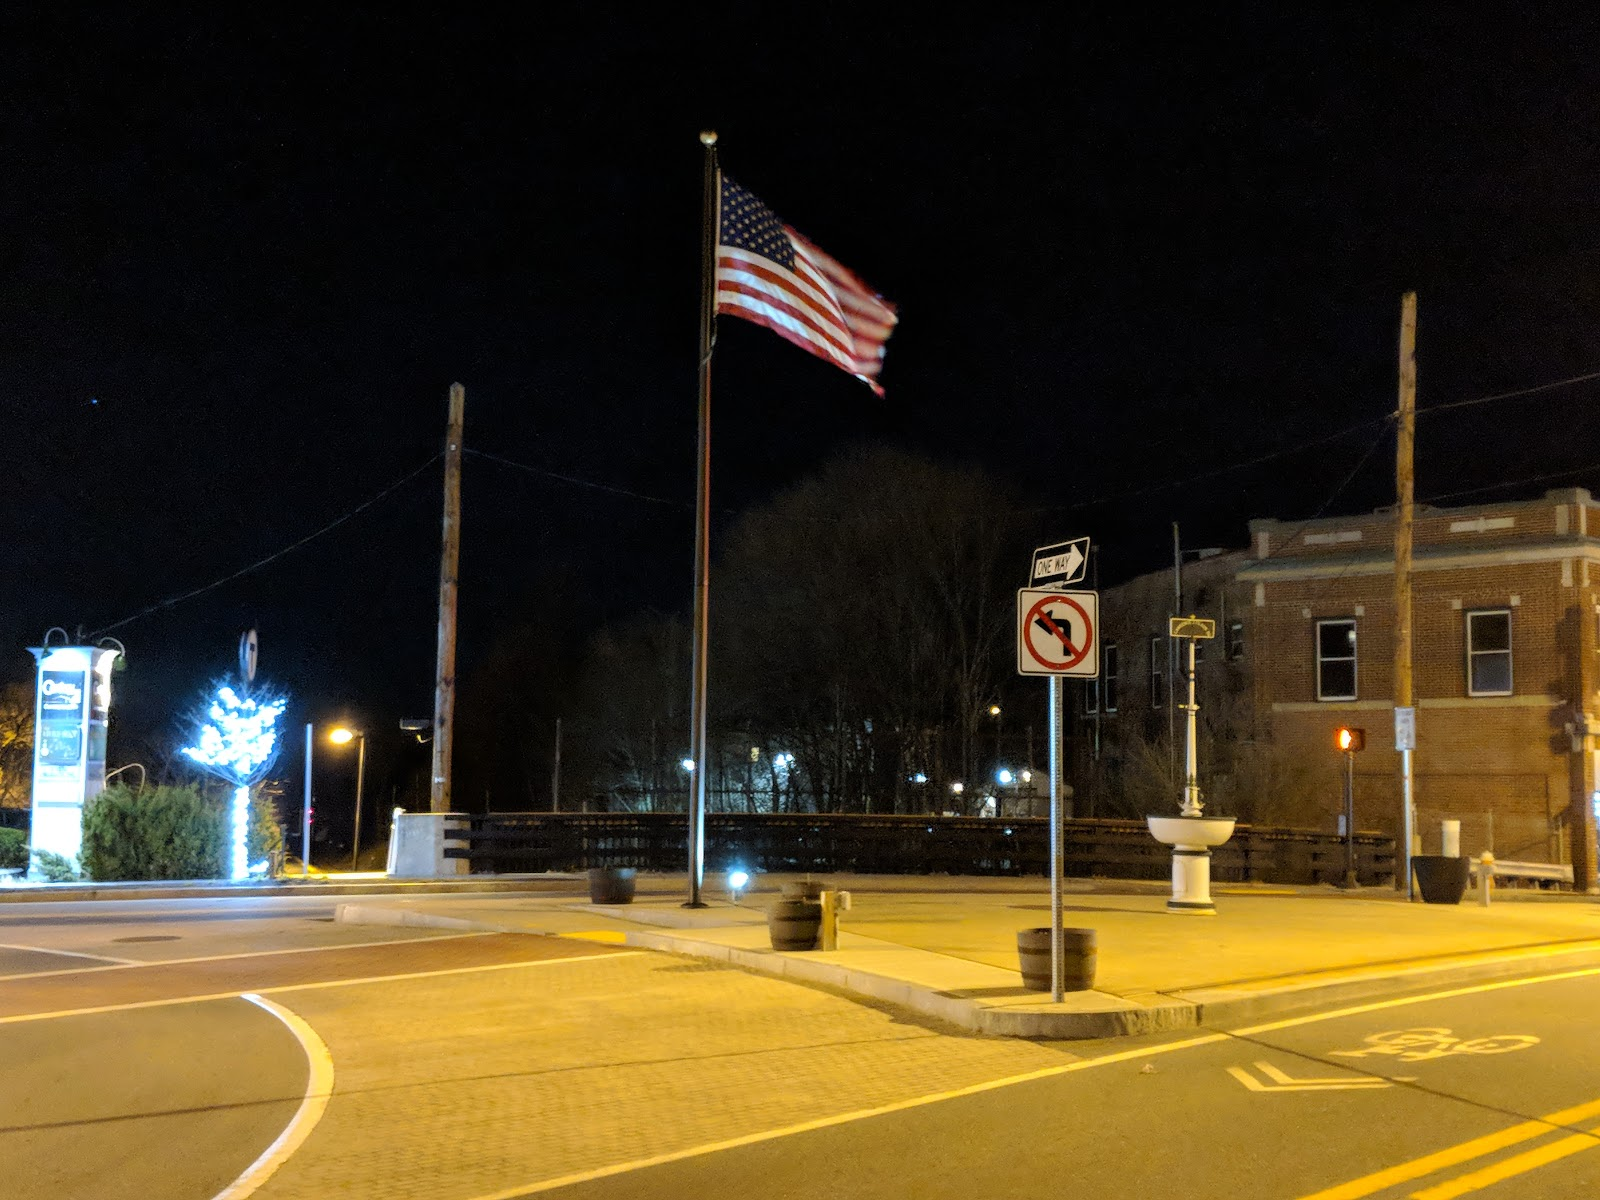 Displaying the american flag at night